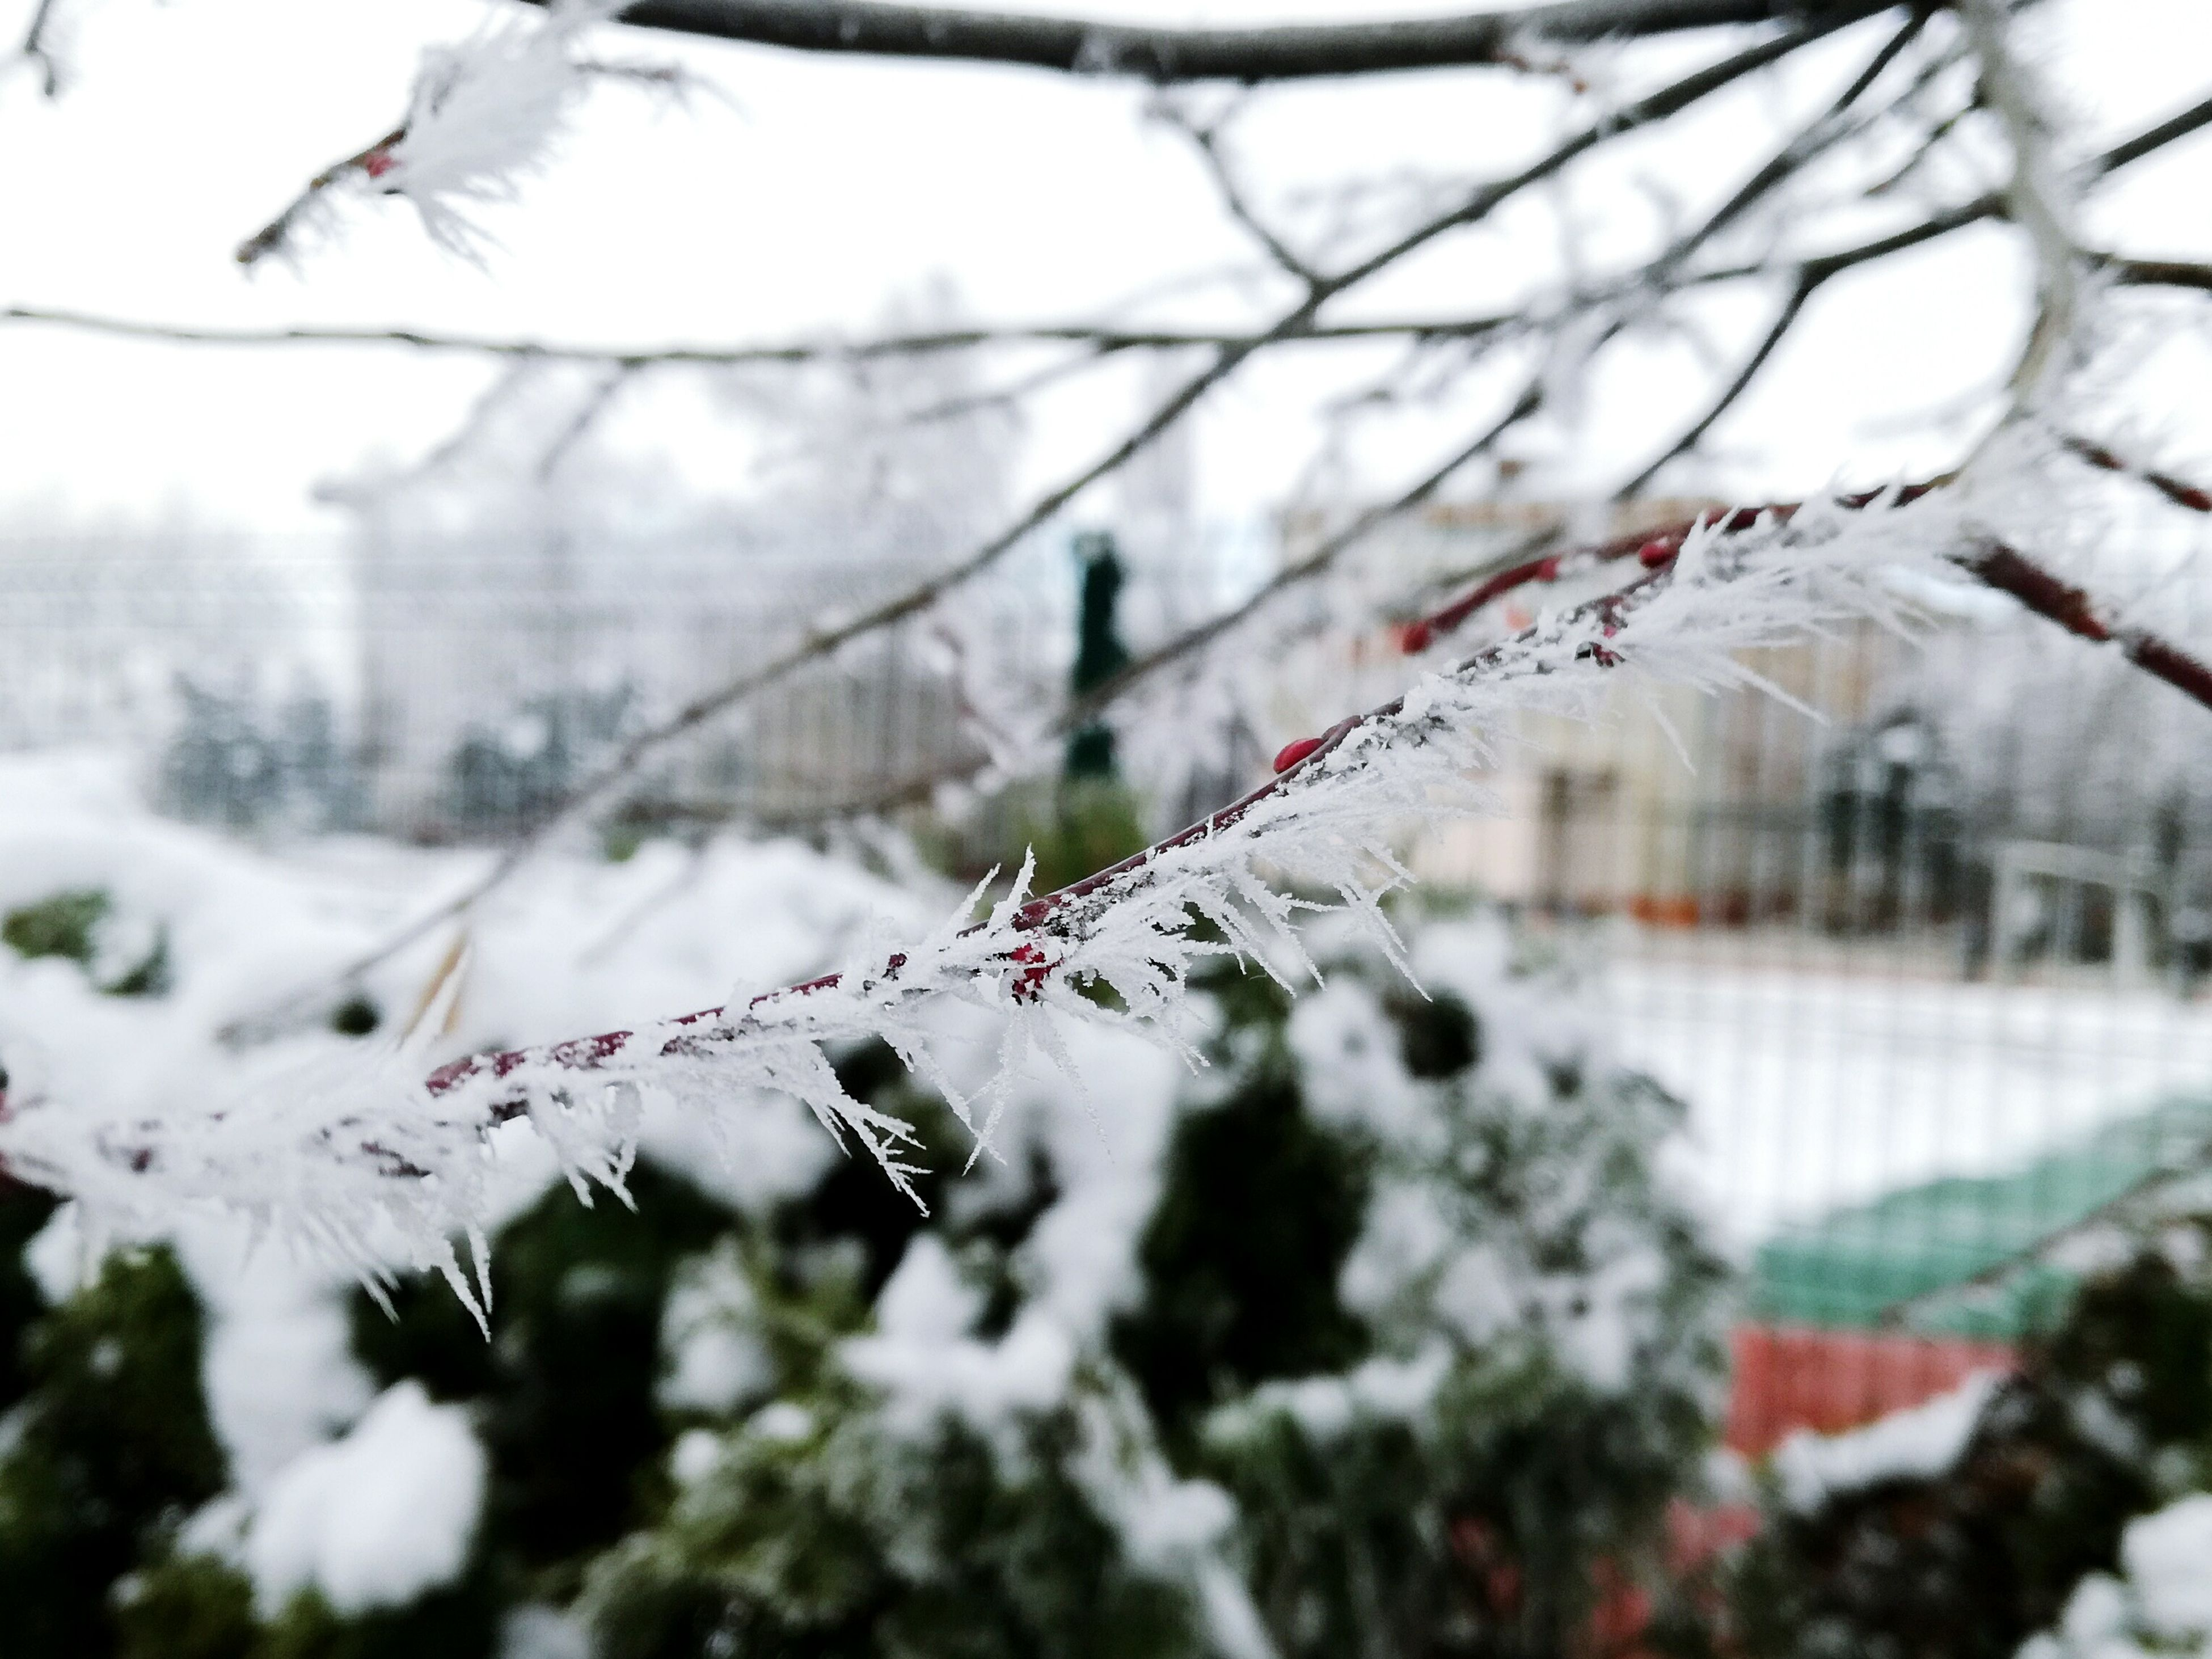 winter, cold temperature, snow, tree, growth, nature, no people, day, outdoors, branch, close-up, sky, beauty in nature